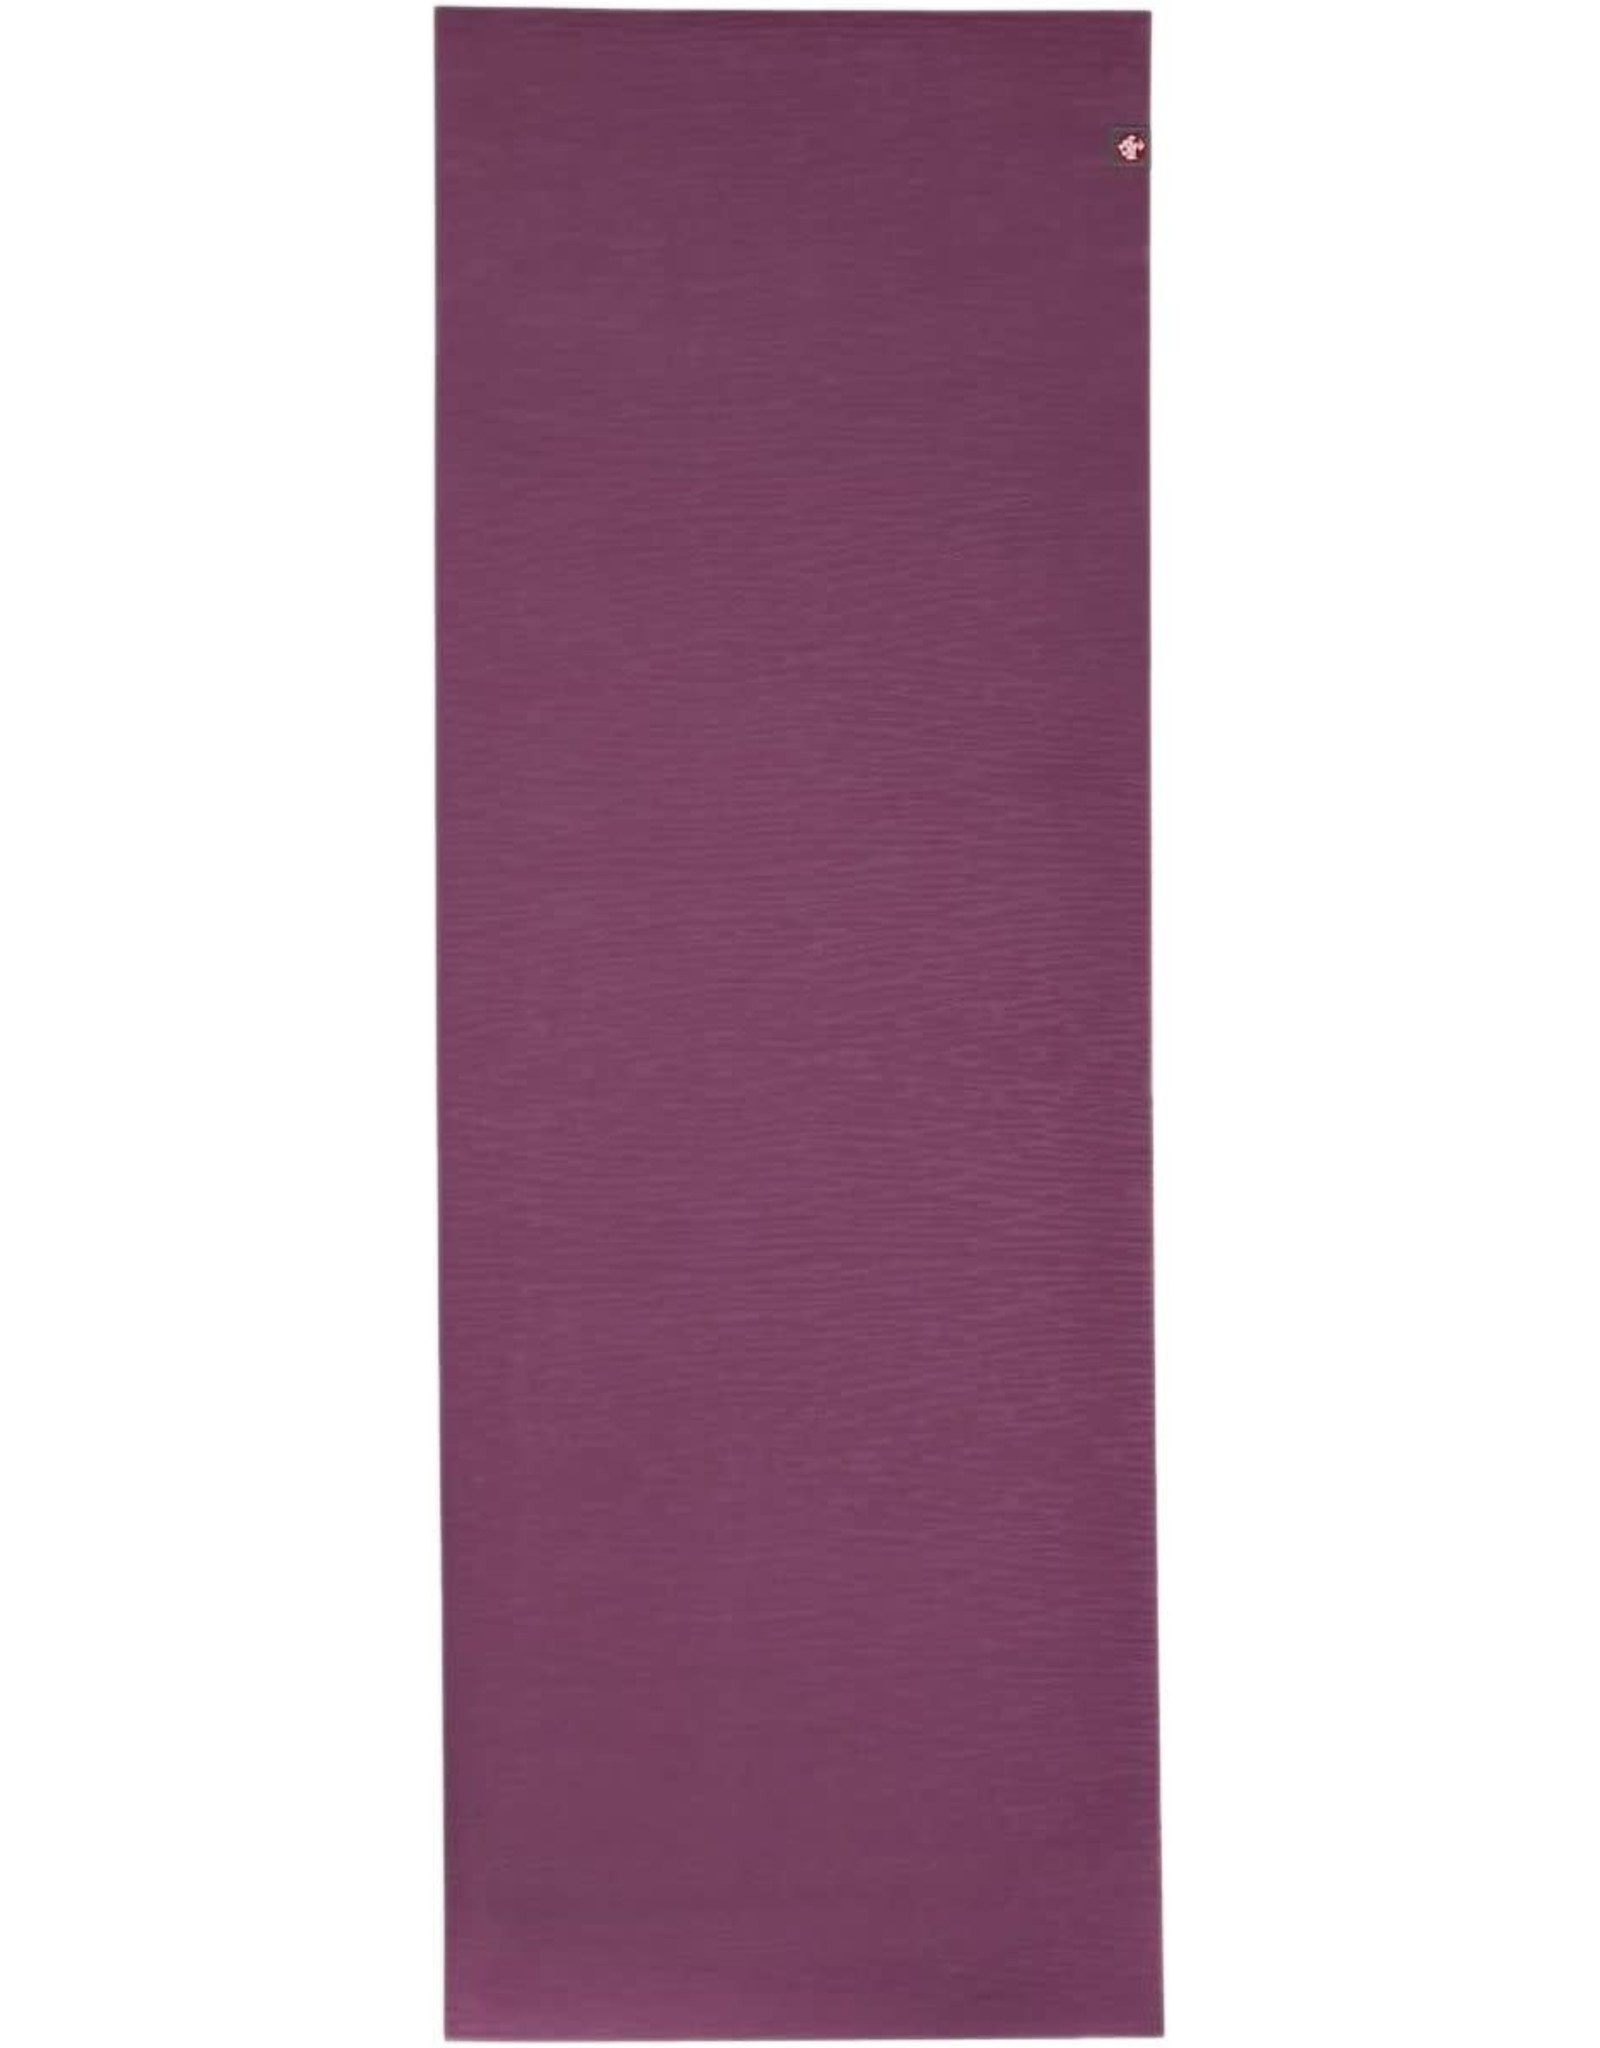 Manduka EKOLITE 4MM-71-Acai Midnight